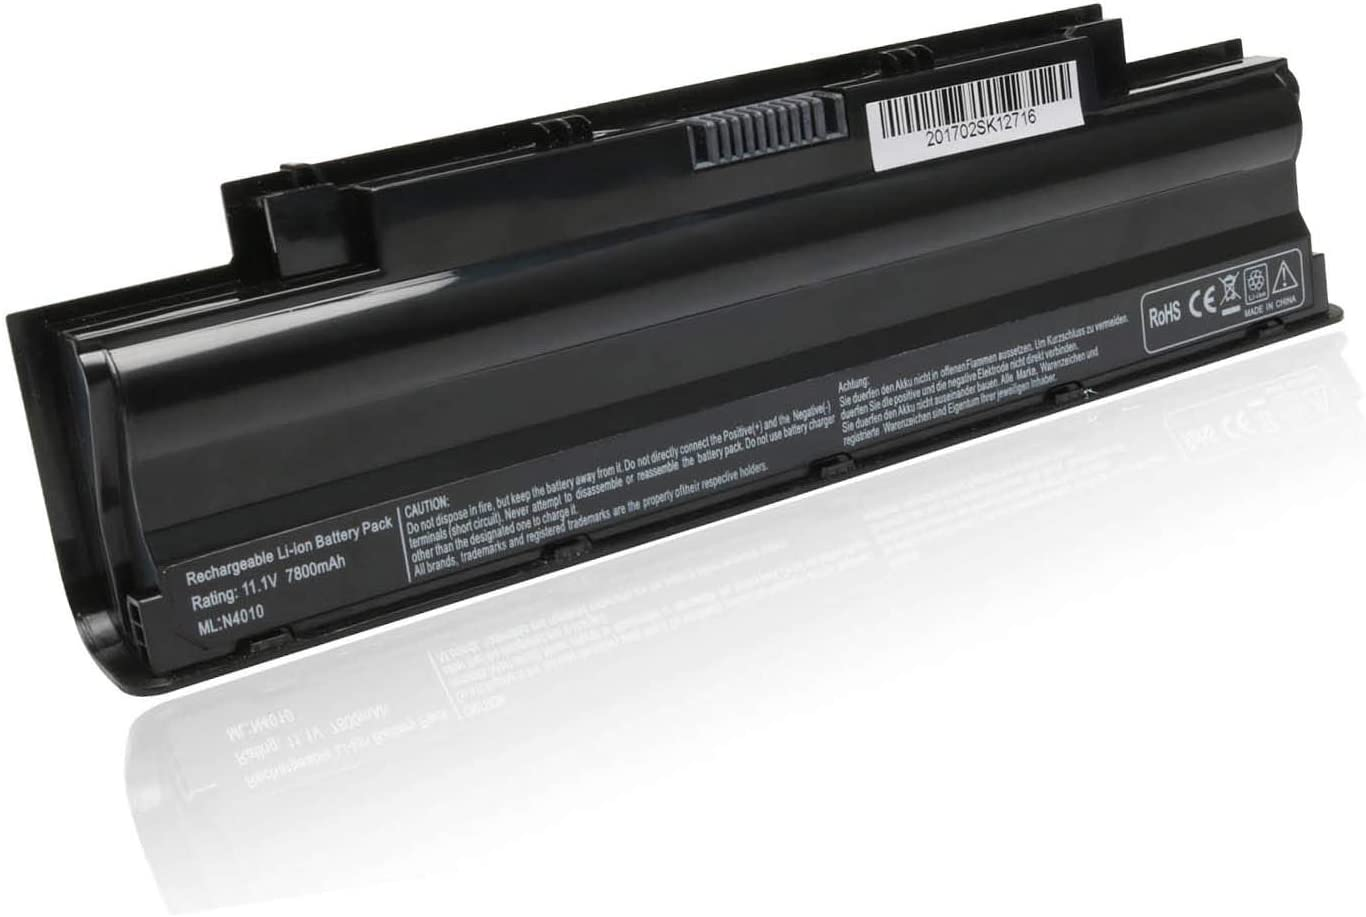 VUOHOEG 9 Cell Laptop Battery Replacement for Dell Inspiron 15R (N5110) 14R (N4010) 17R (N7010) 13R (N3010) 3420 3520 M5110 M501 M503 Series; Fits J1KND 4T7JN - 7800mAh 11.1V